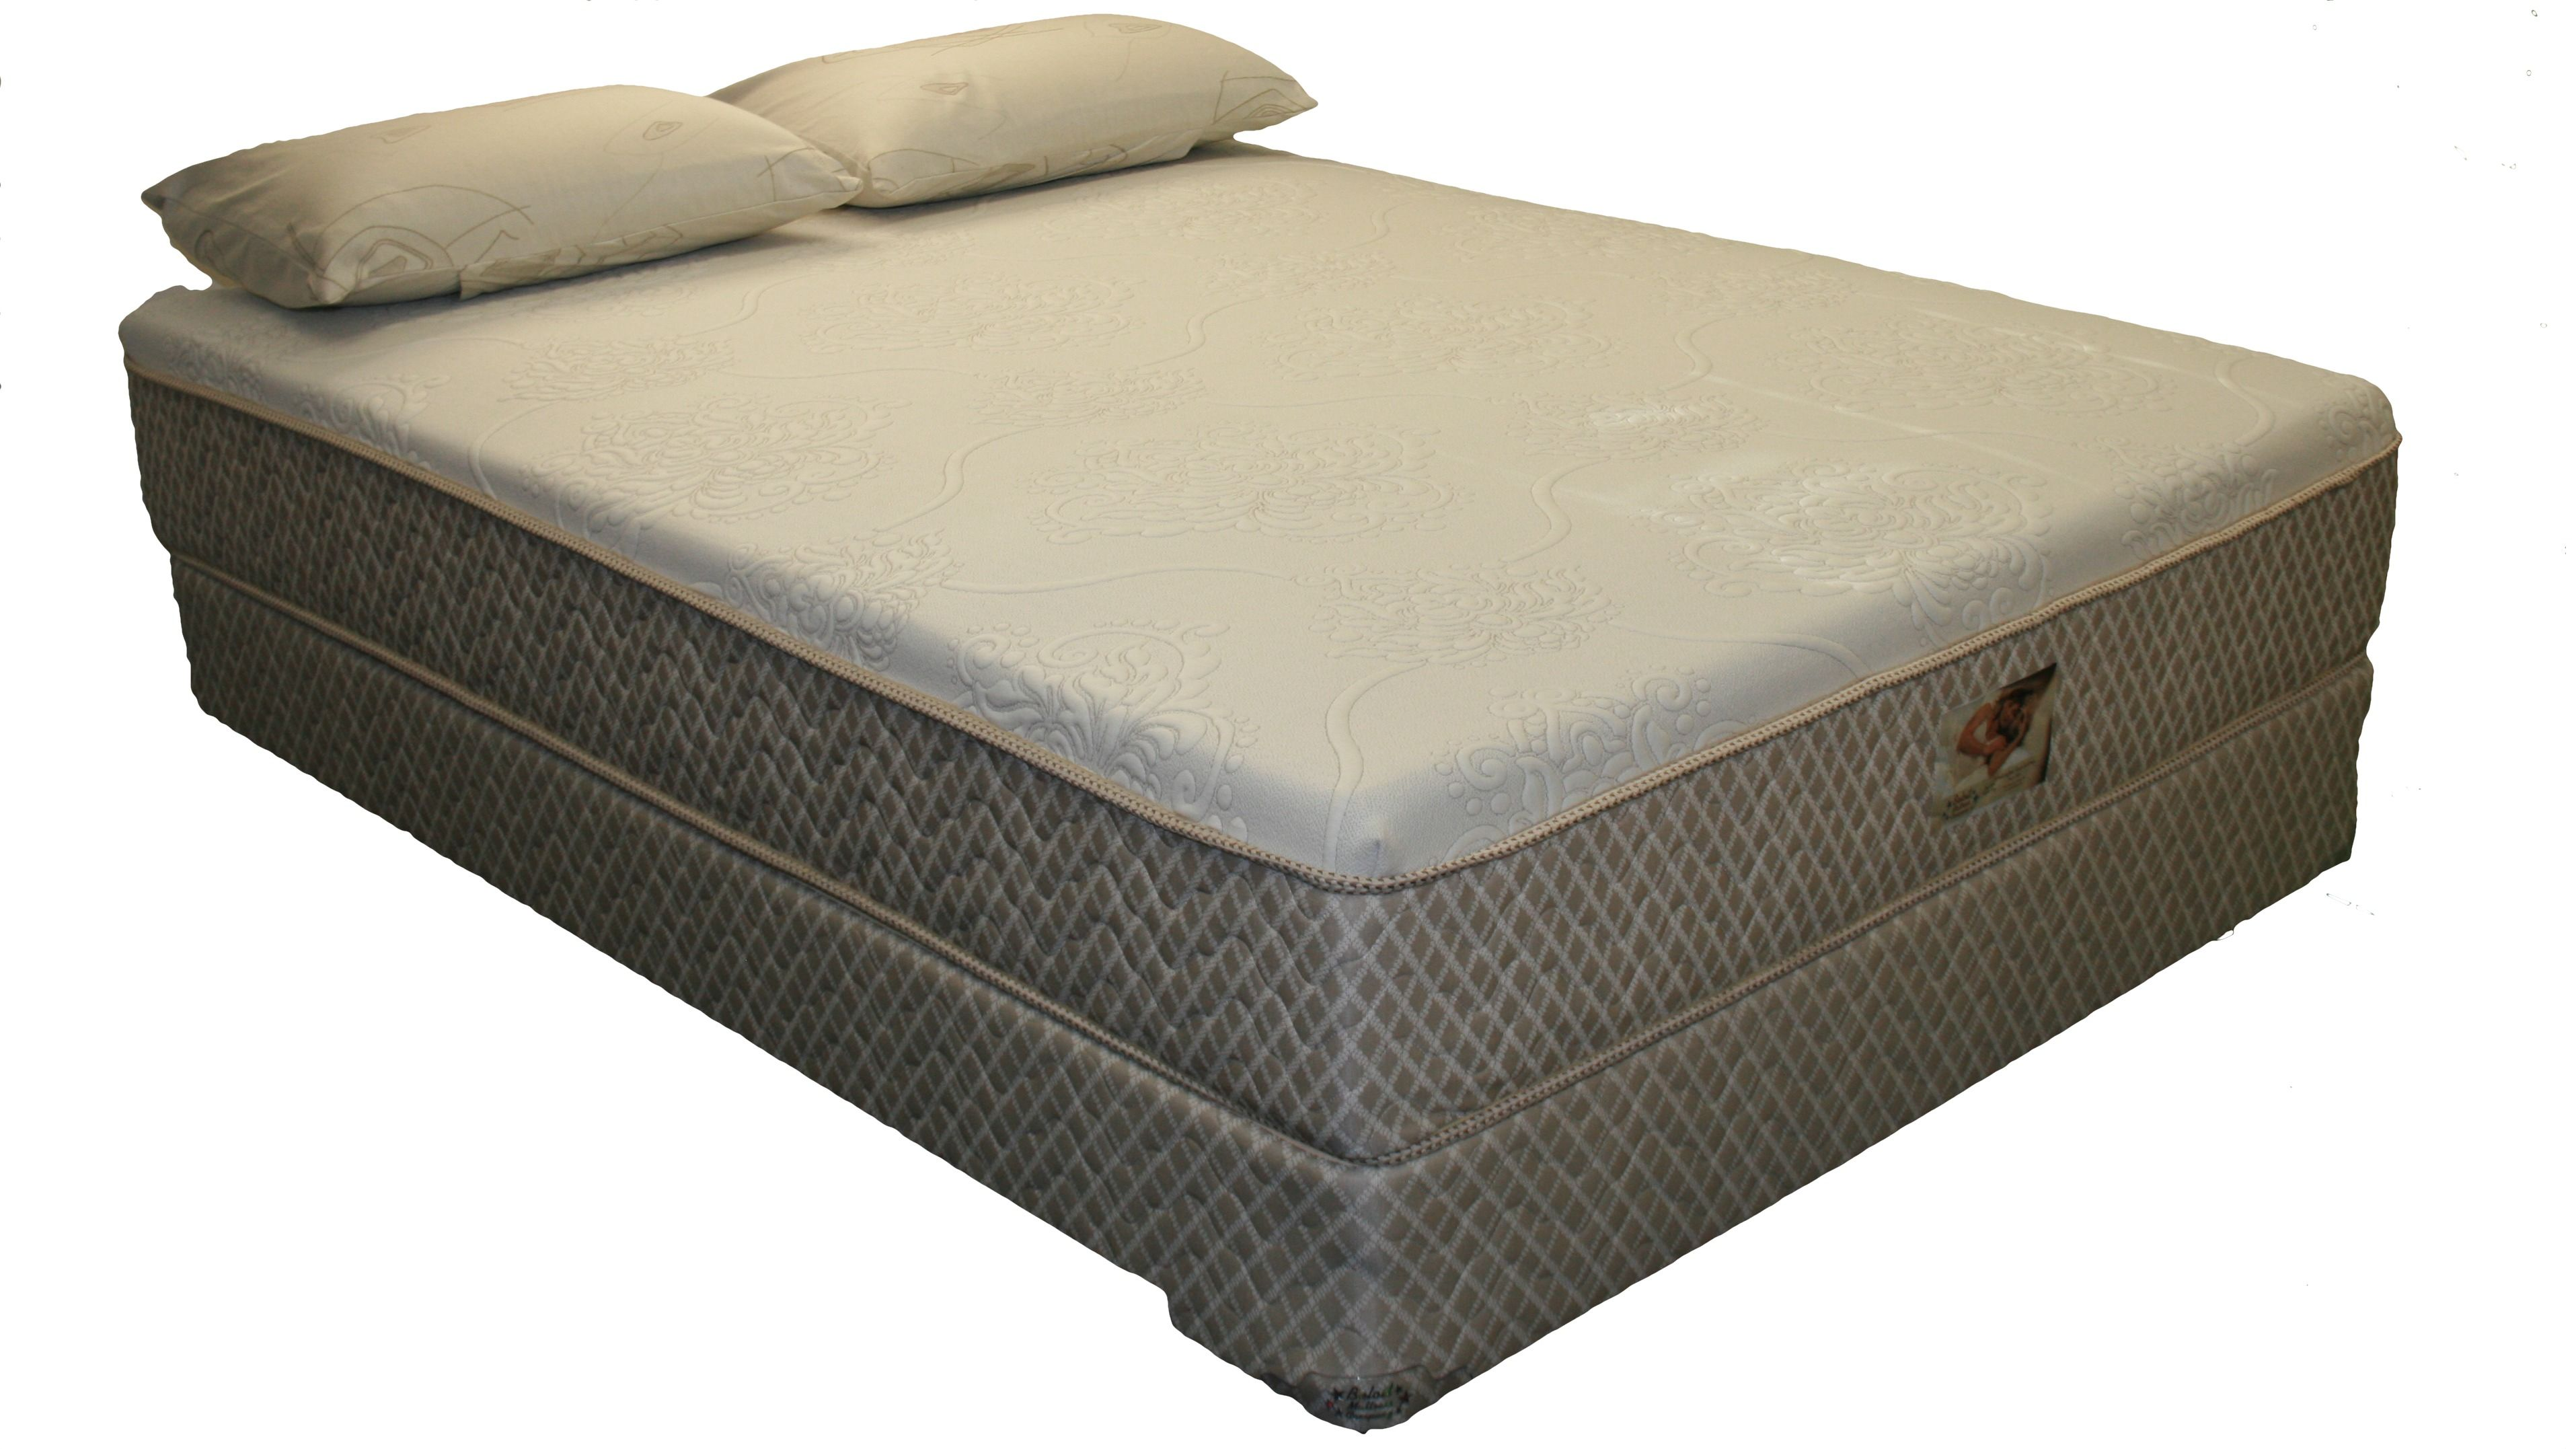 The Cloud Hybrid Is Our Softest Mattress Have You Been Considering A Gel Foam Or Memory Foam Mattress But Not Sure If Y Soft Mattress Mattress Hybrid Mattress